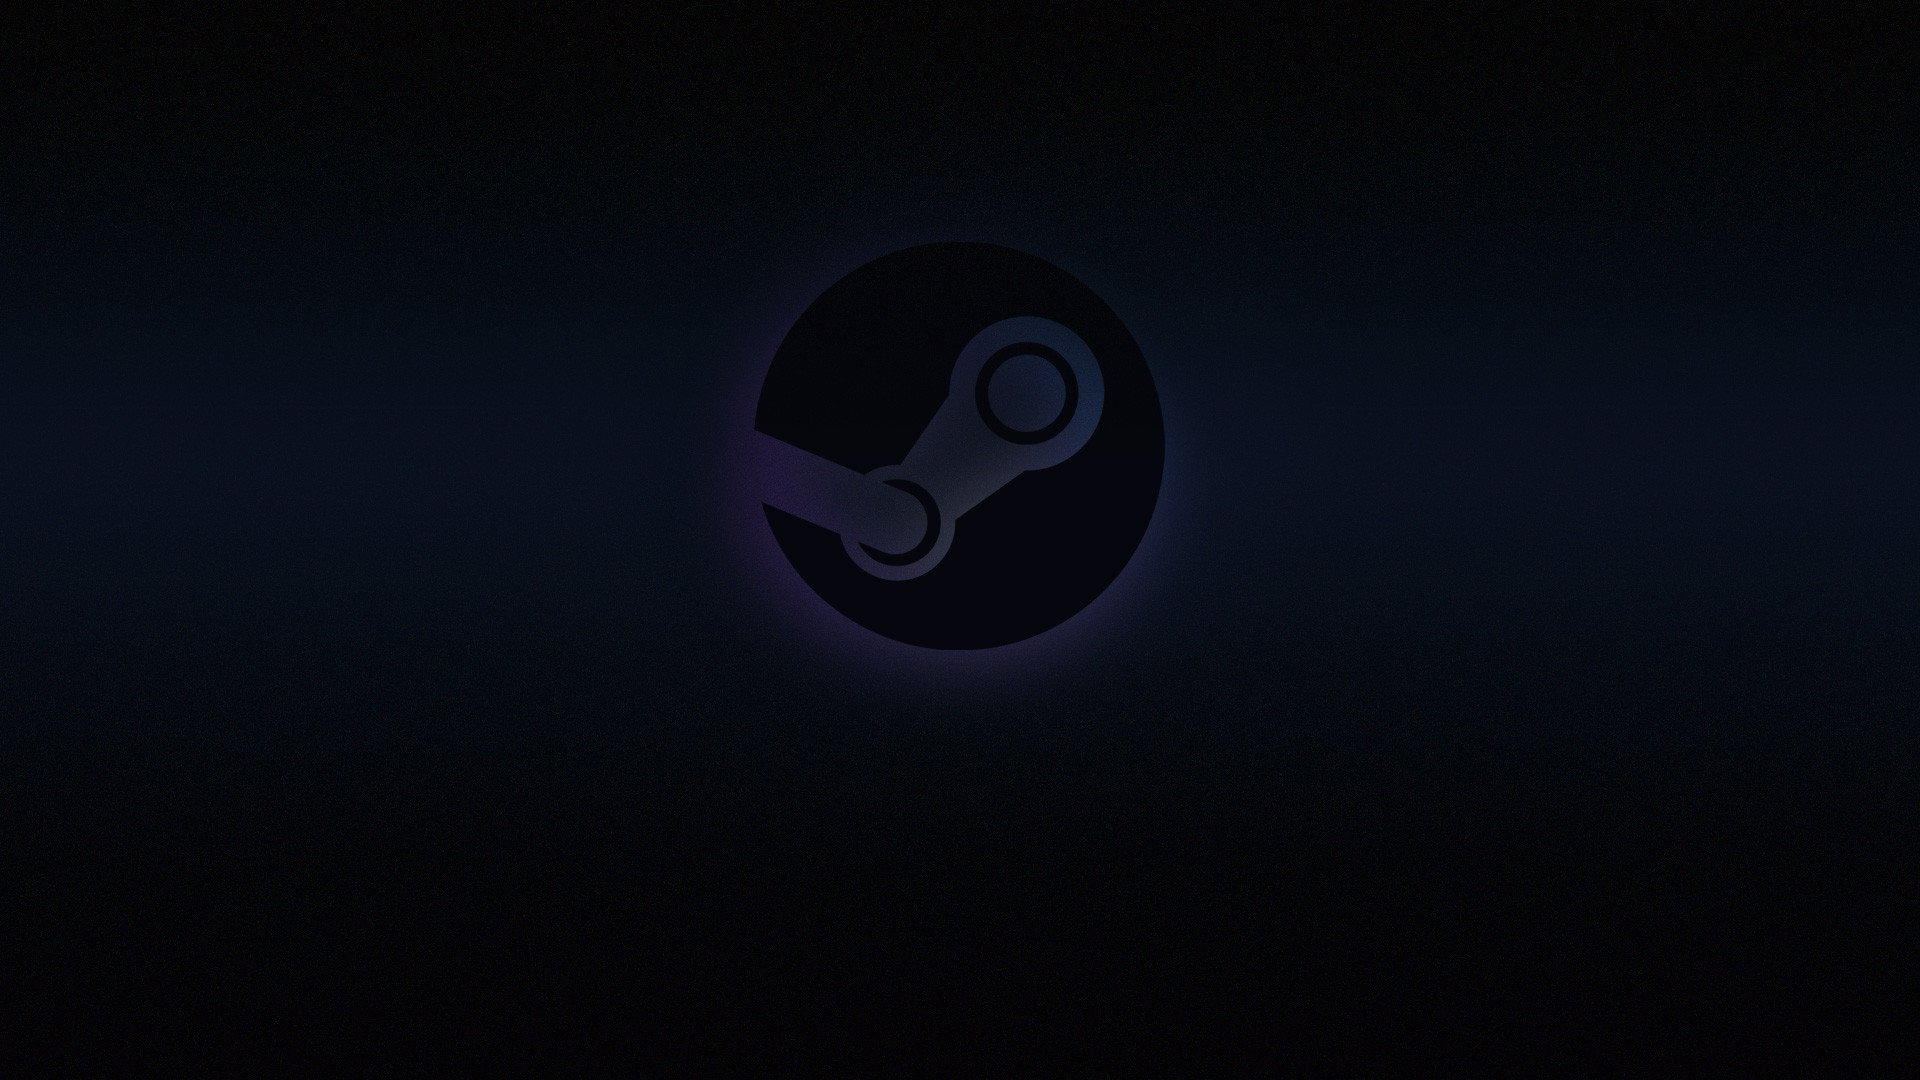 Latest Steam update allows for more games to be played on Linux